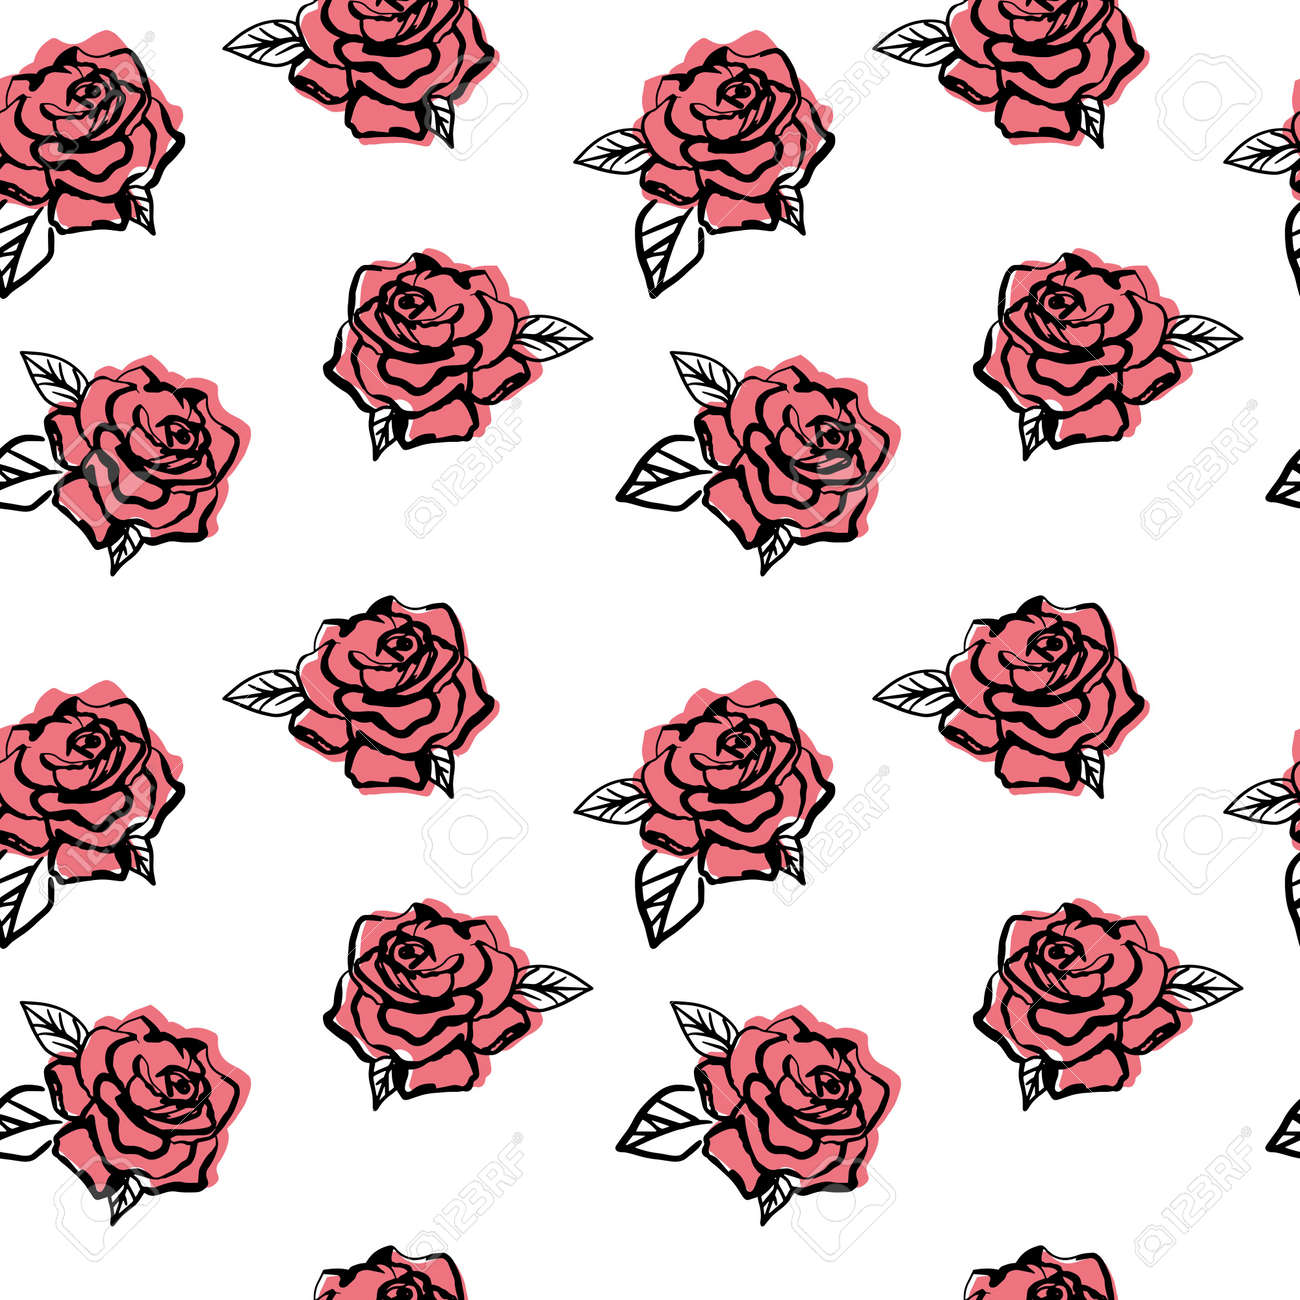 Simple roses pattern on white background. Line art flower back drop. Perfect for textile. - 154728213